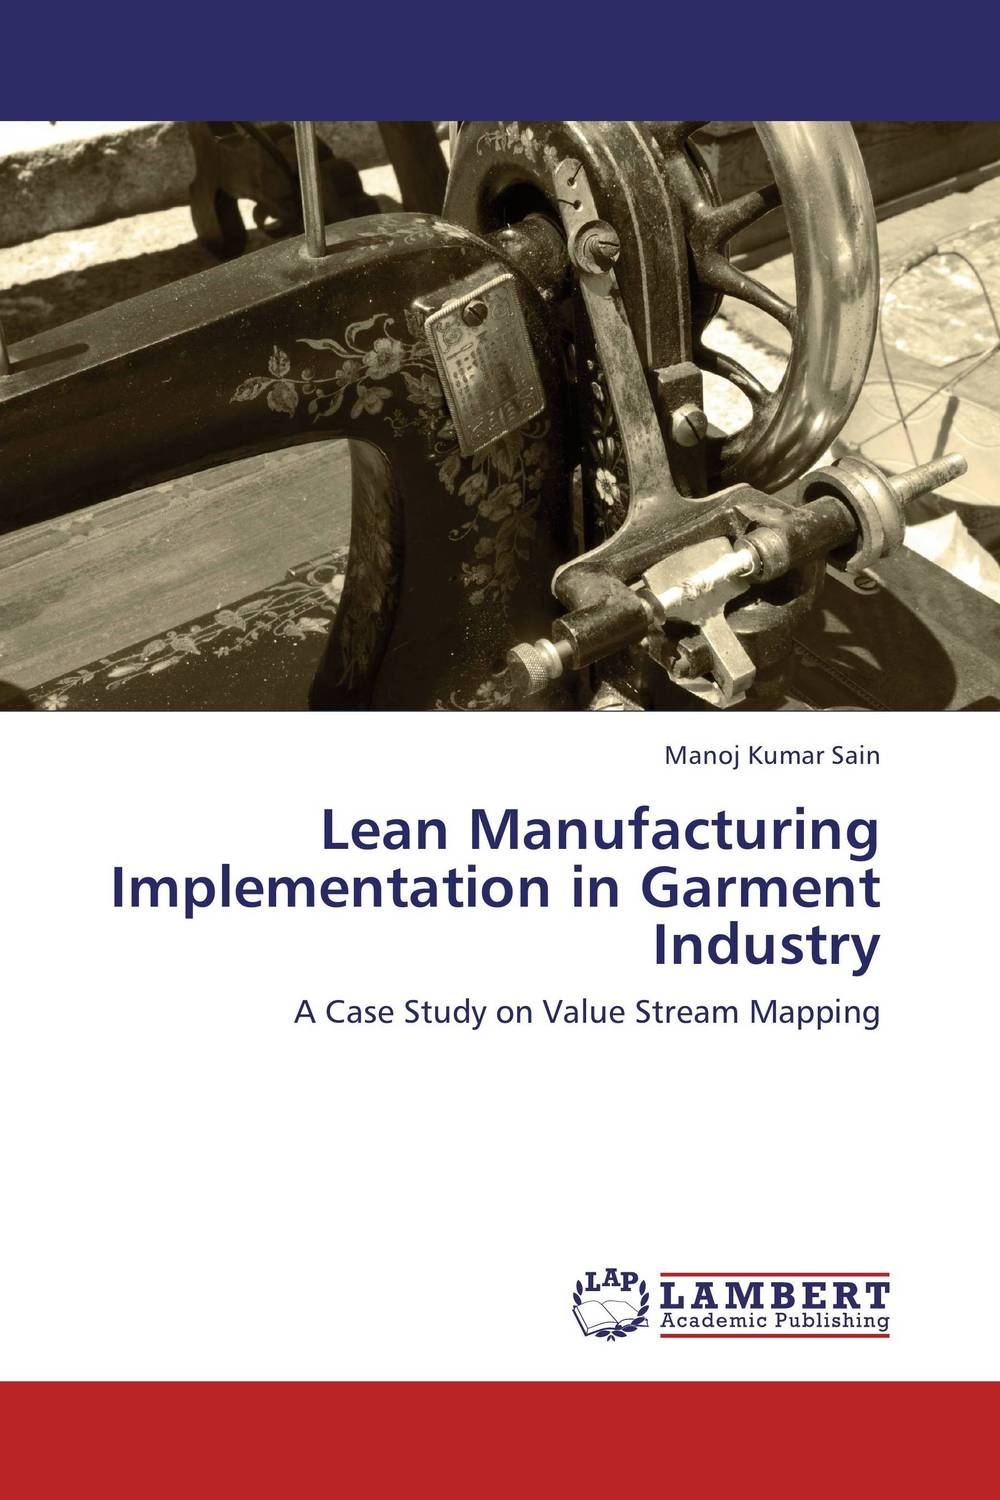 Lean Manufacturing Implementation in Garment Industry james paterson c lean auditing driving added value and efficiency in internal audit